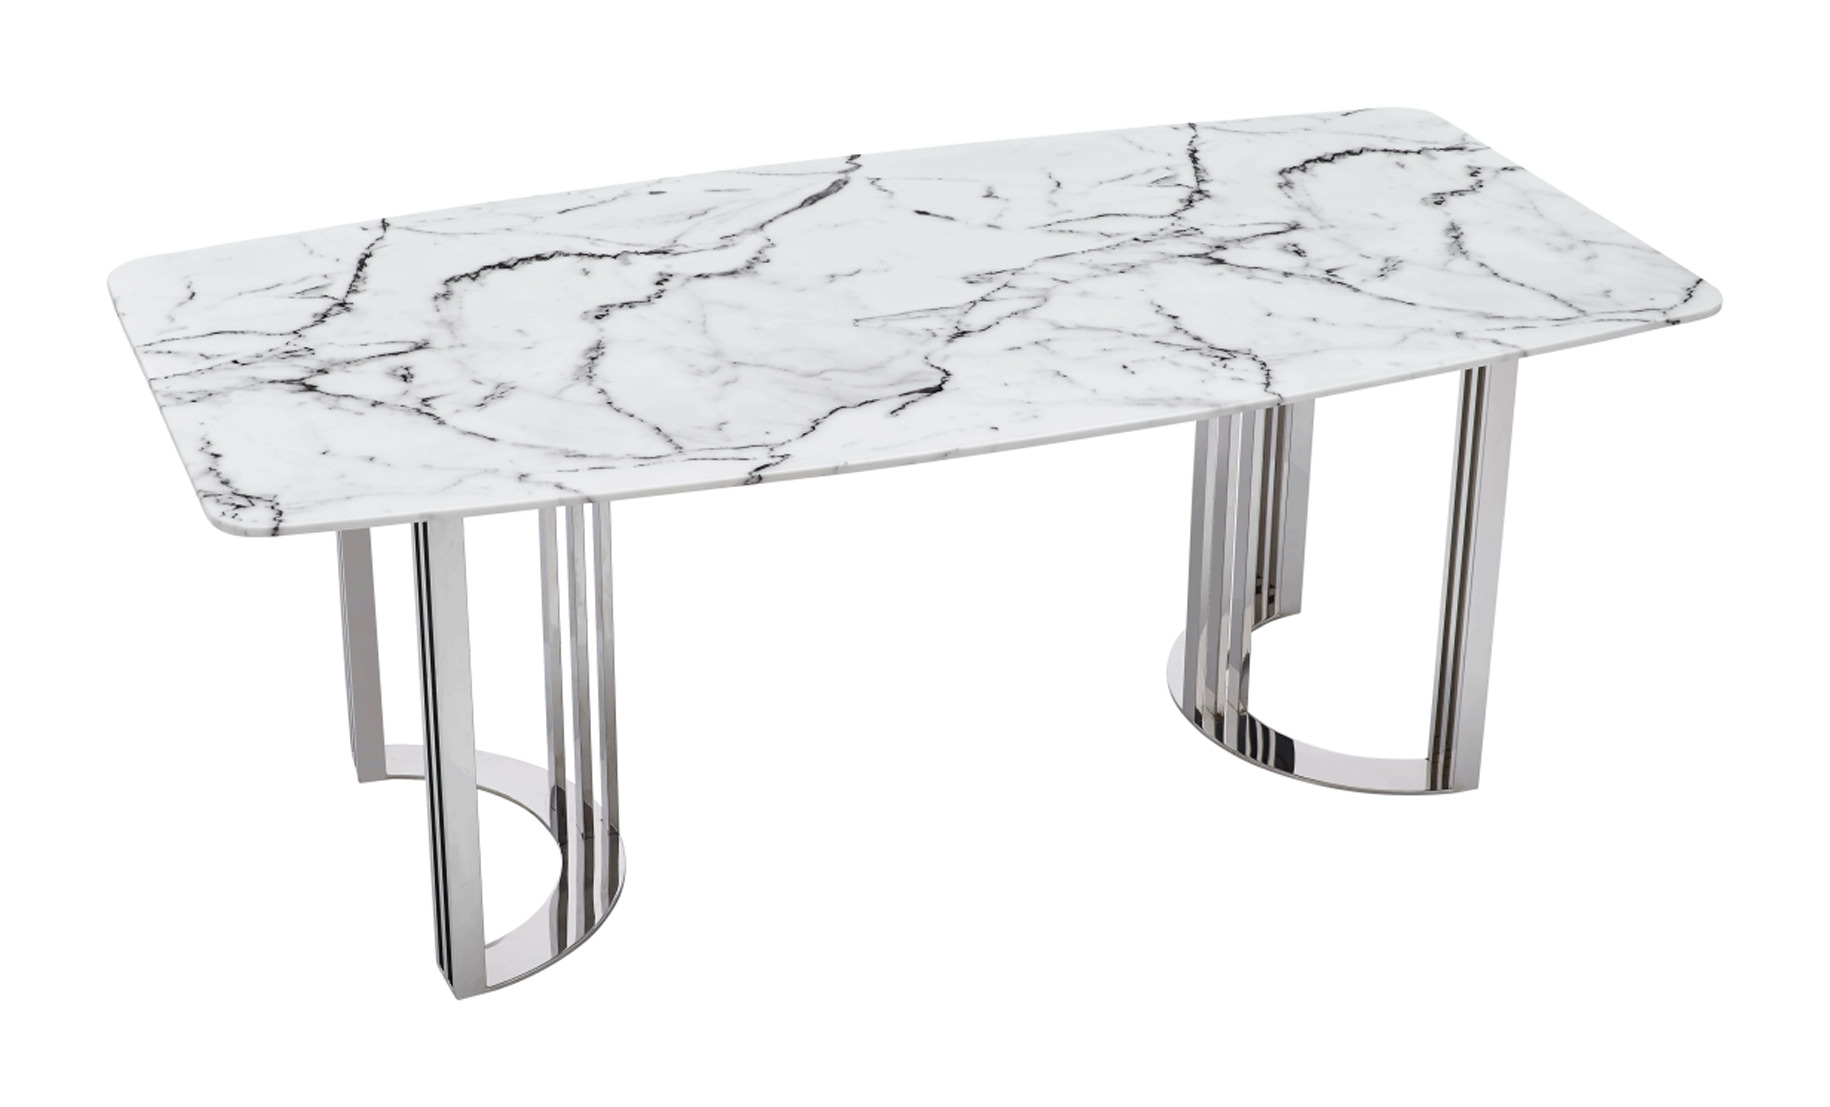 Natural White Marble Top and Chrome Legs Dining Table - Click Image to Close